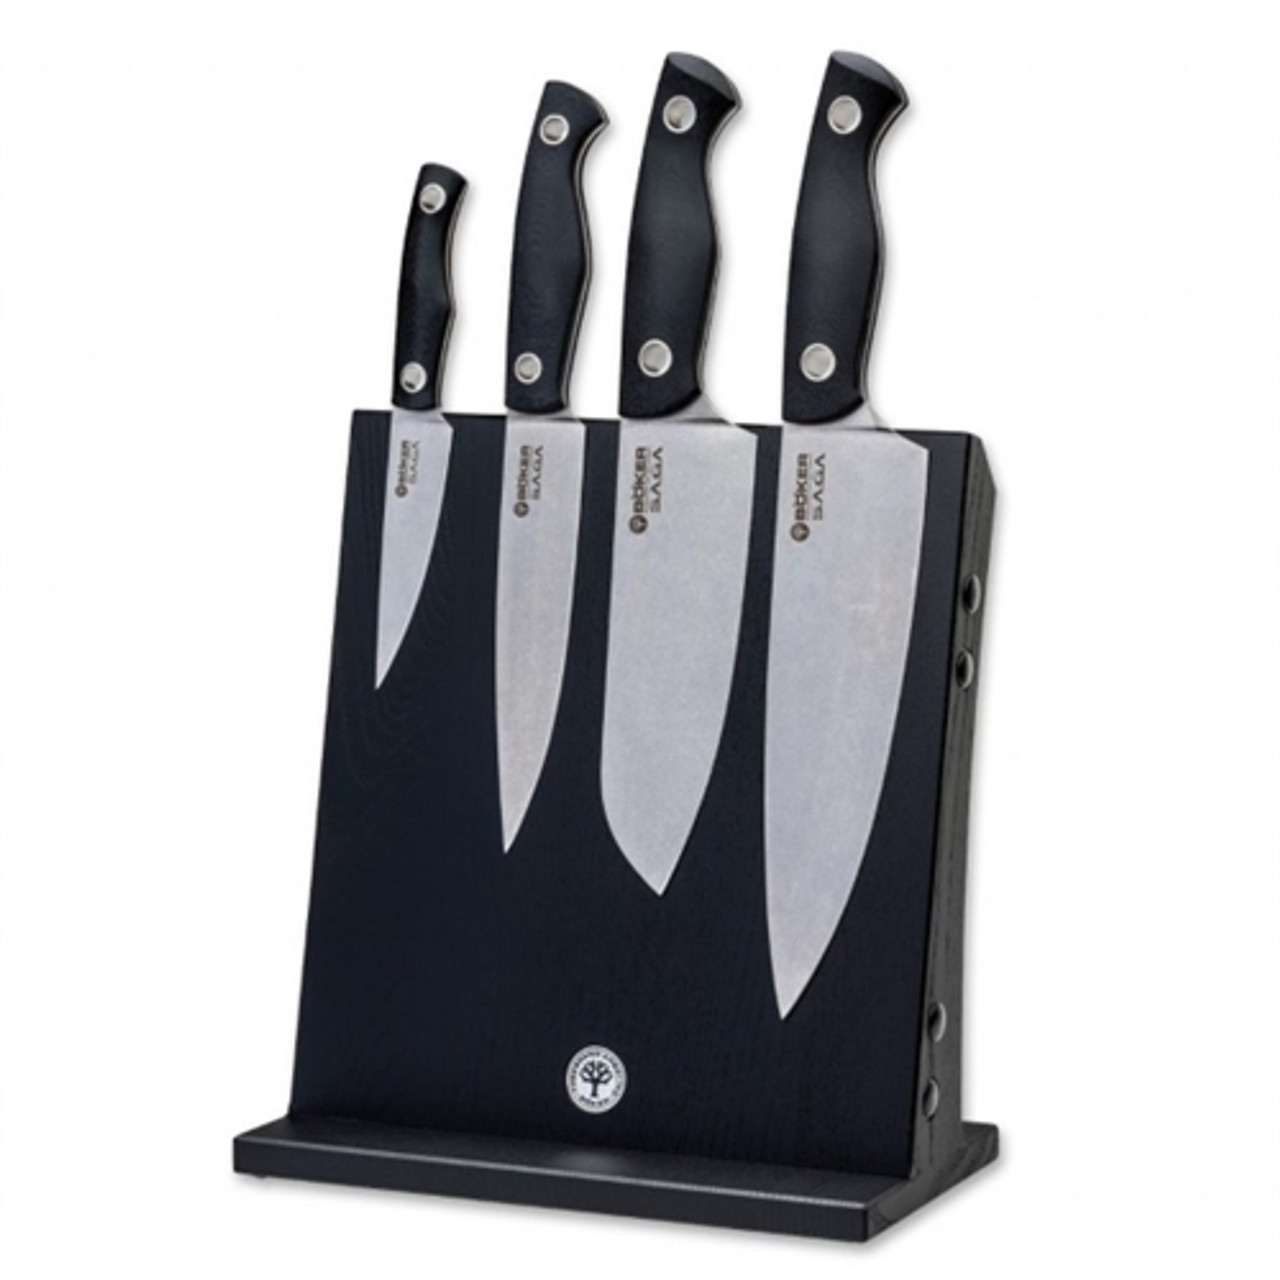 Boker 130267SET Saga 4-Piece Kitchen Knife Set, Display Block, Stonewash Blades